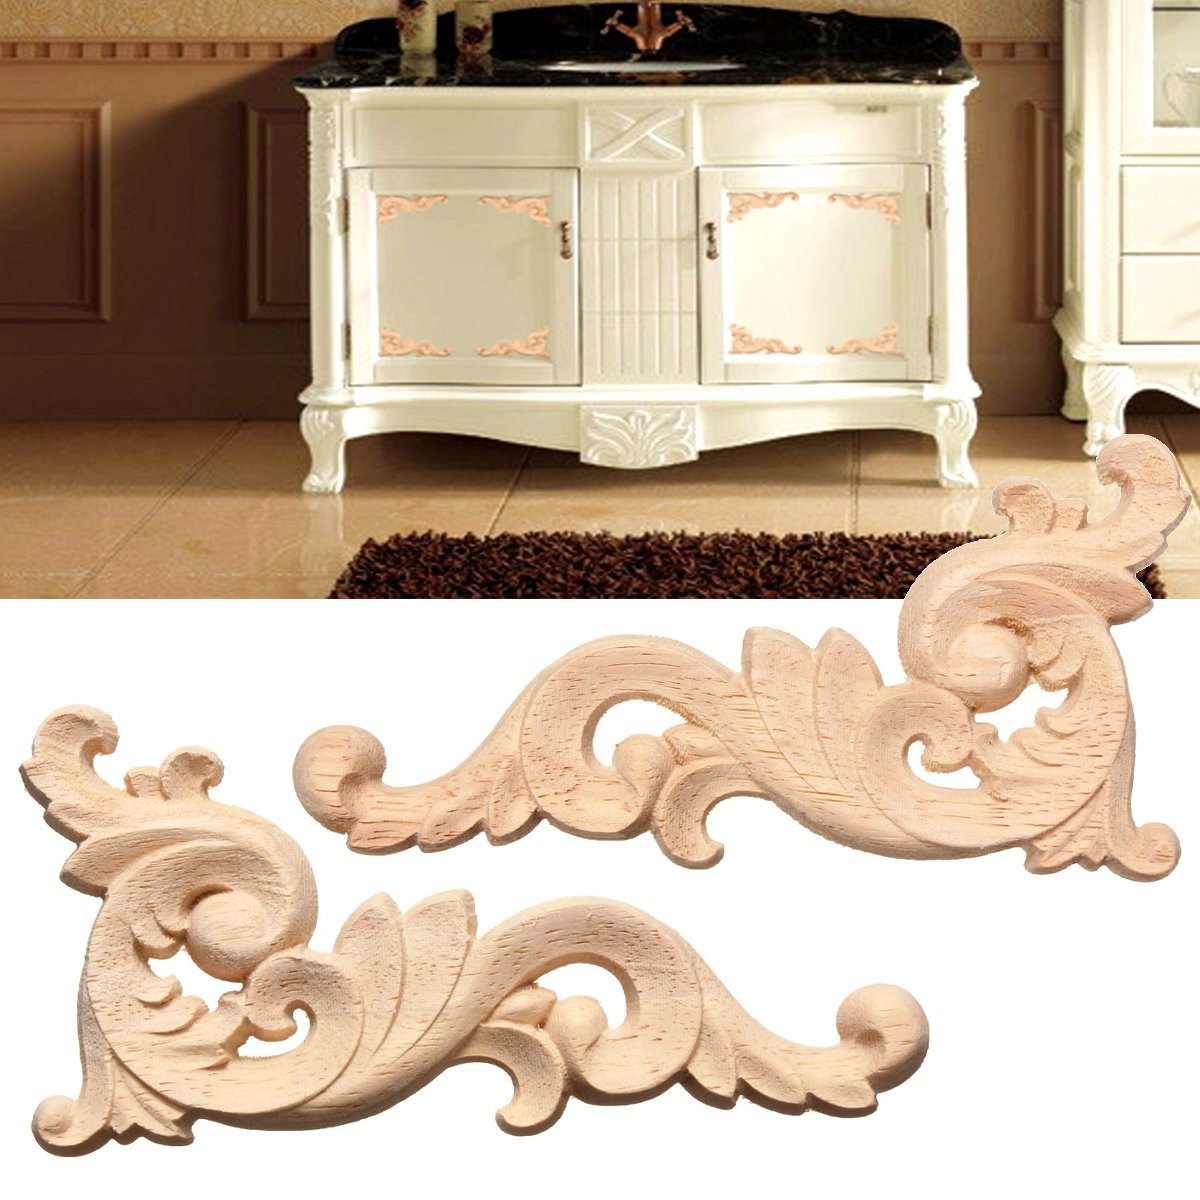 4PCS 12x6cm Wood Carved Corner Onlay Applique Frame Unpainted Door Wall Cabinets Furniture Decor